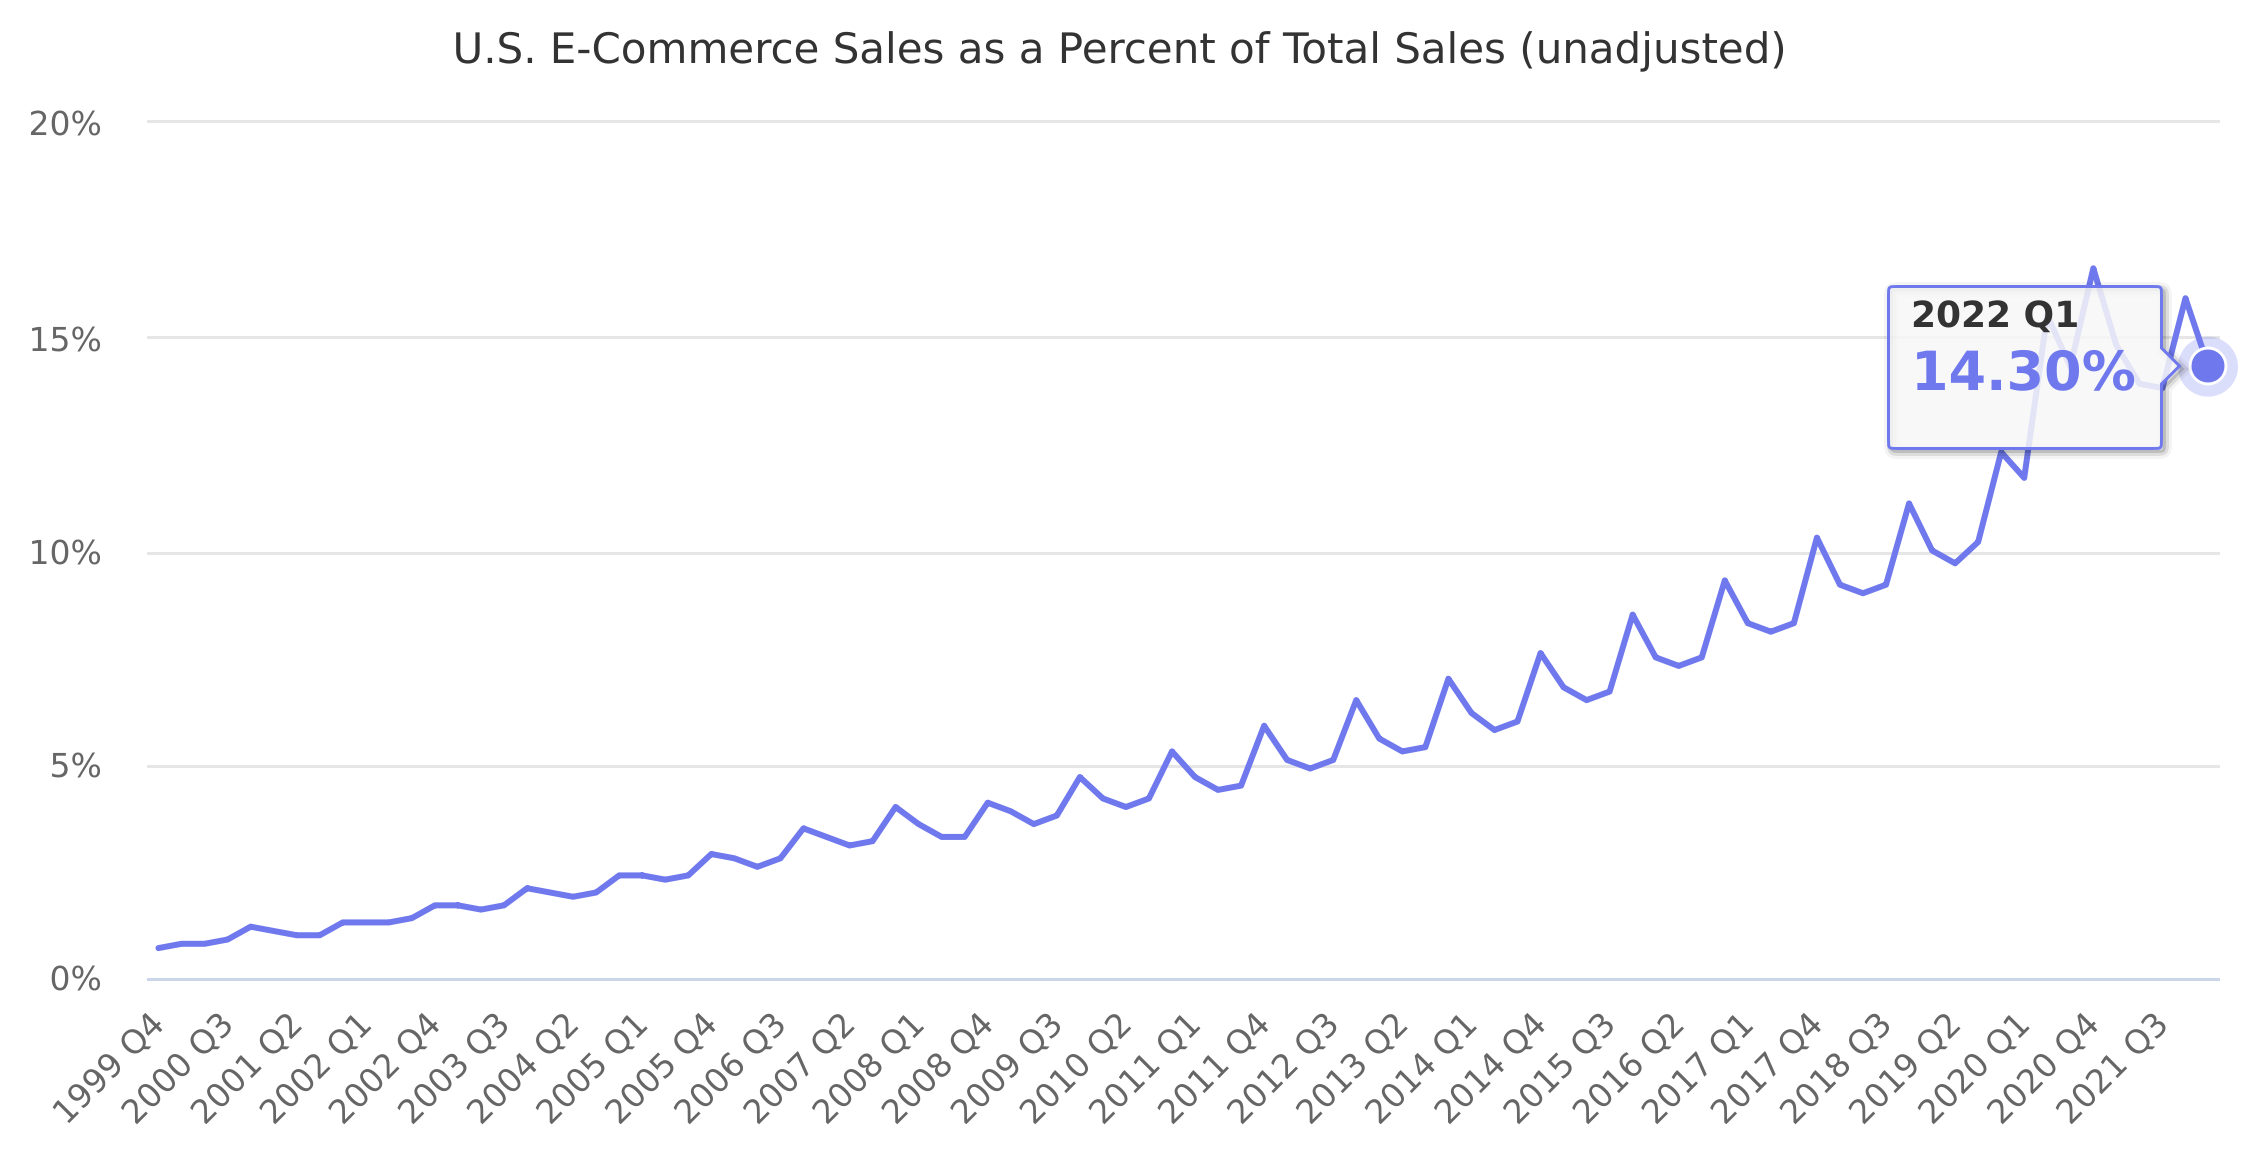 U.S. E-Commerce Sales as a Percent of Total Sales (unadjusted) 1999-2019